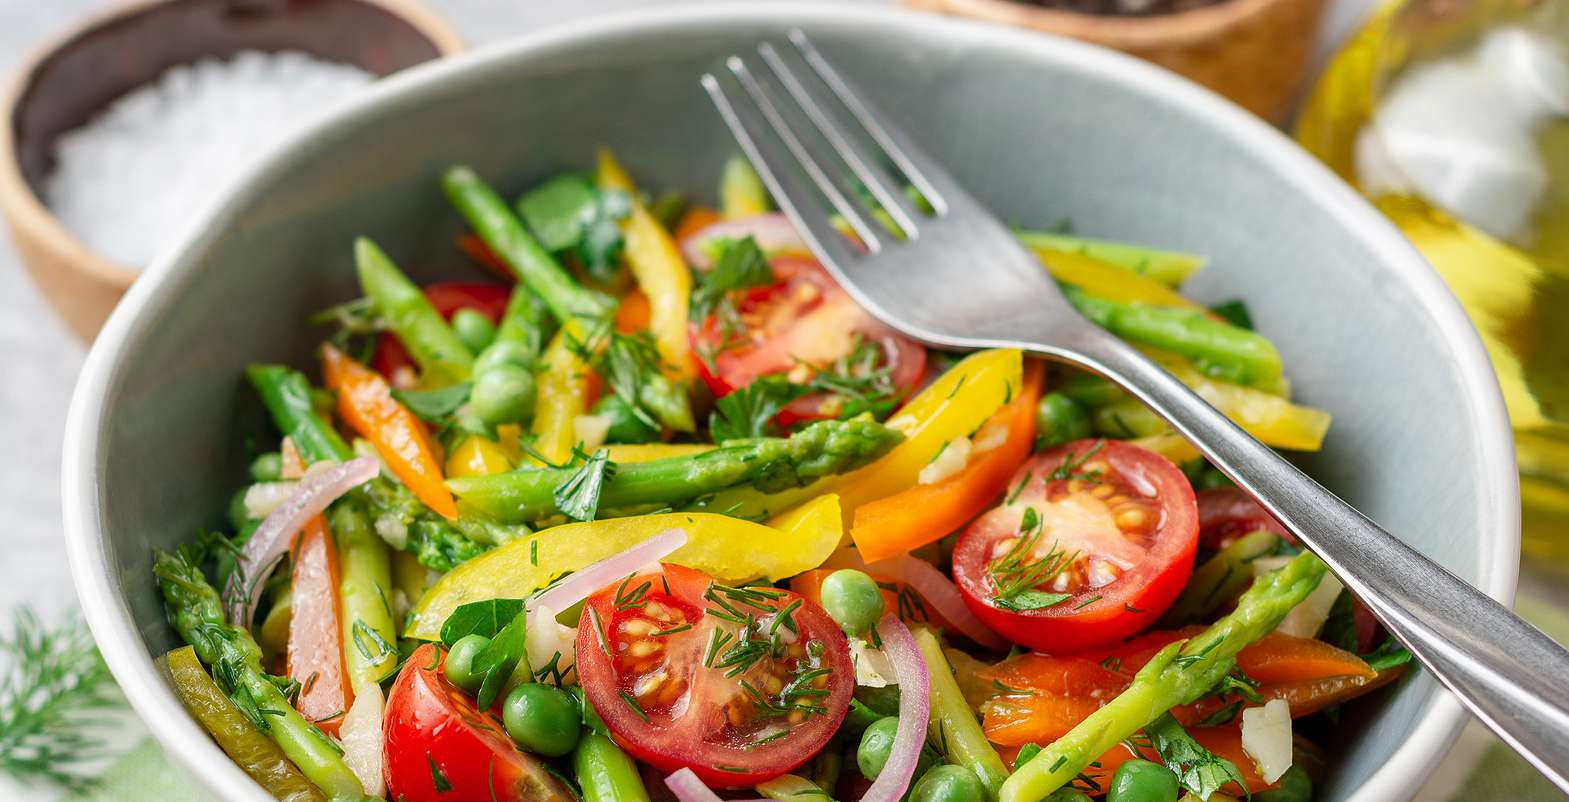 Asparagus, Peas, and Tomatoes